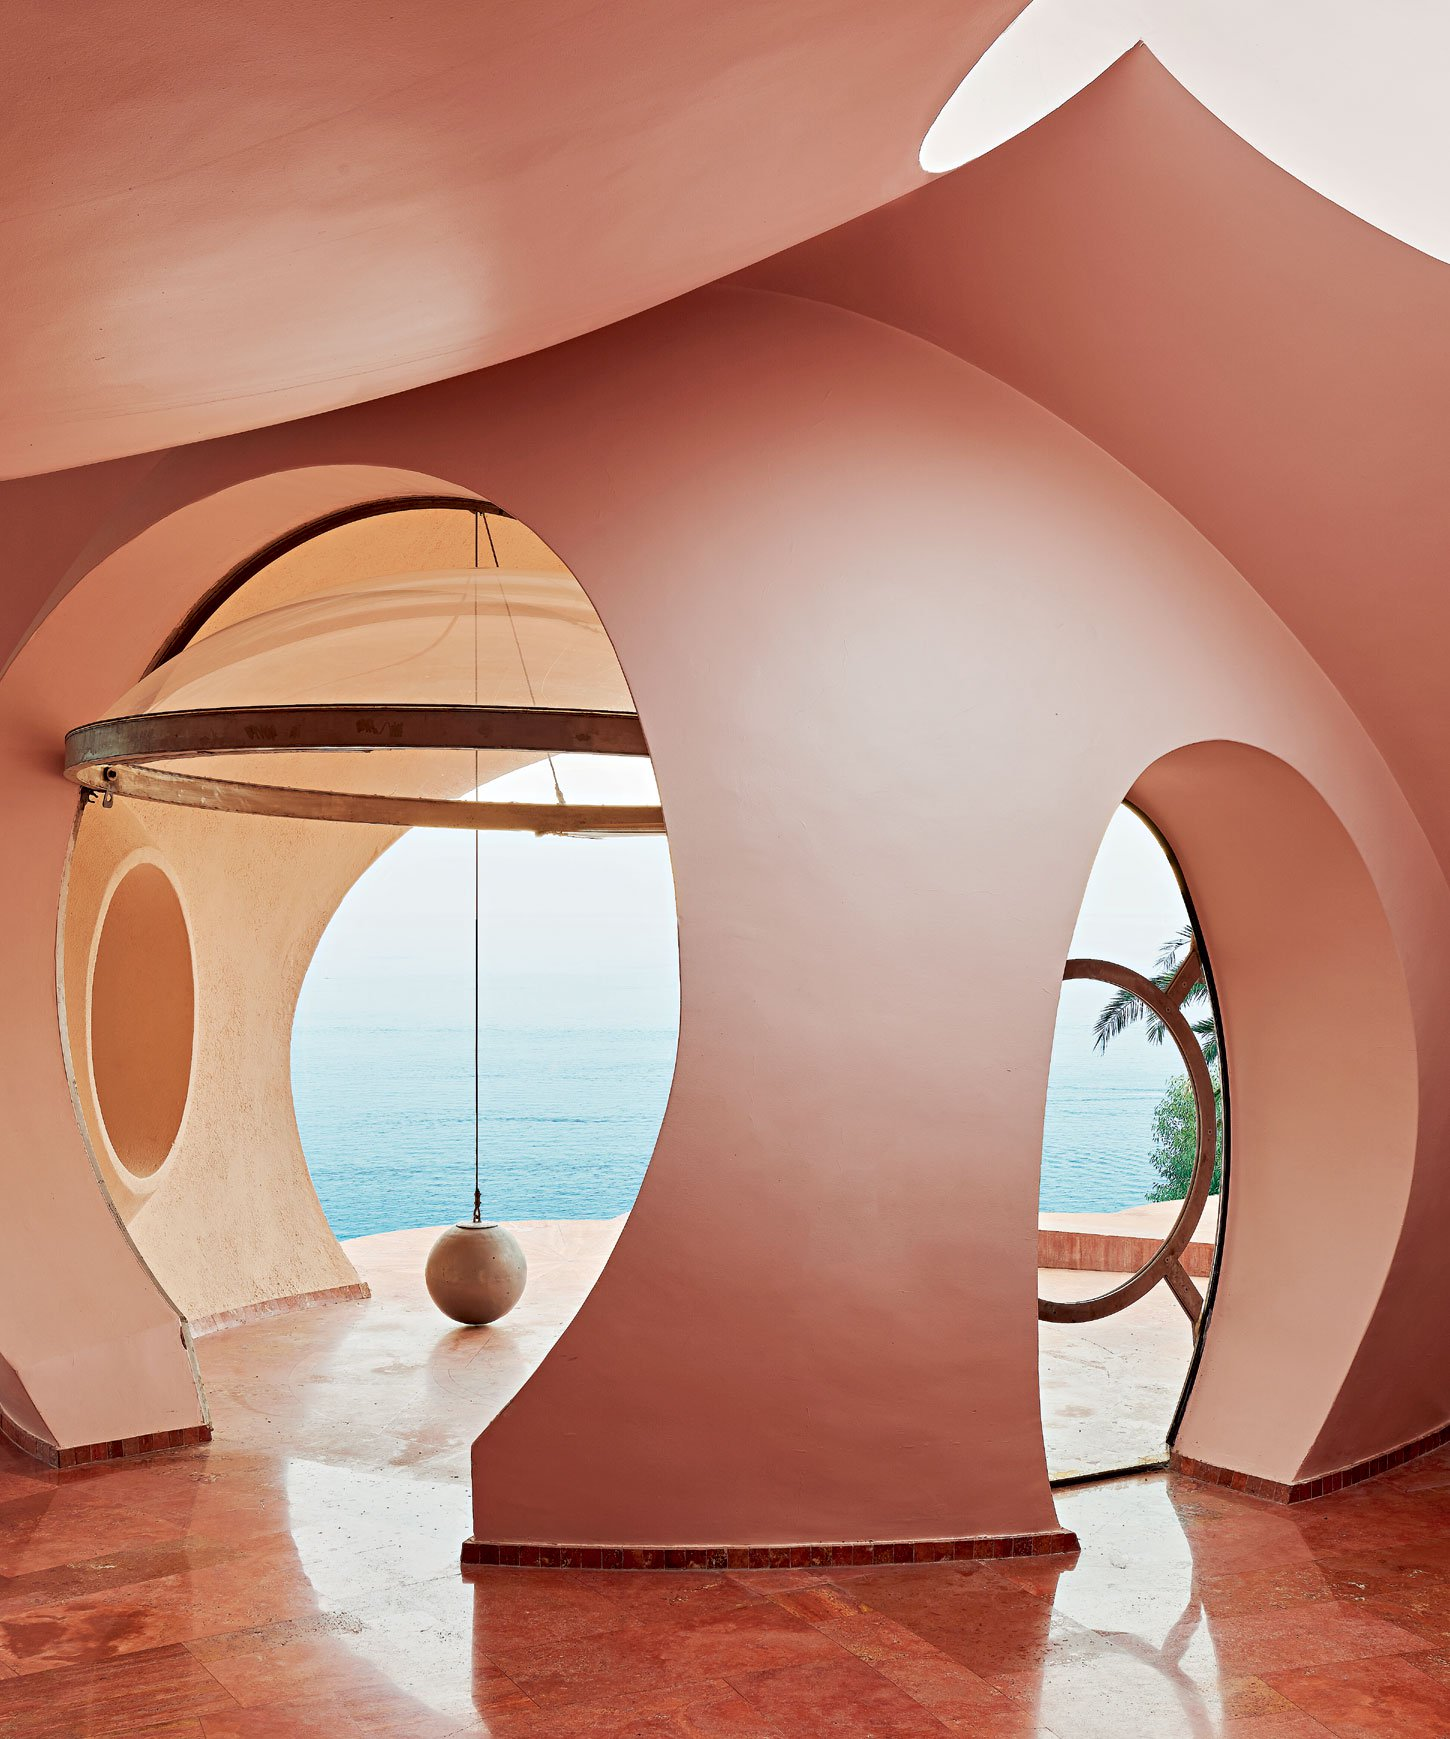 Take A Look Inside The Iconic Bubble Palace Christie S International Real Estate